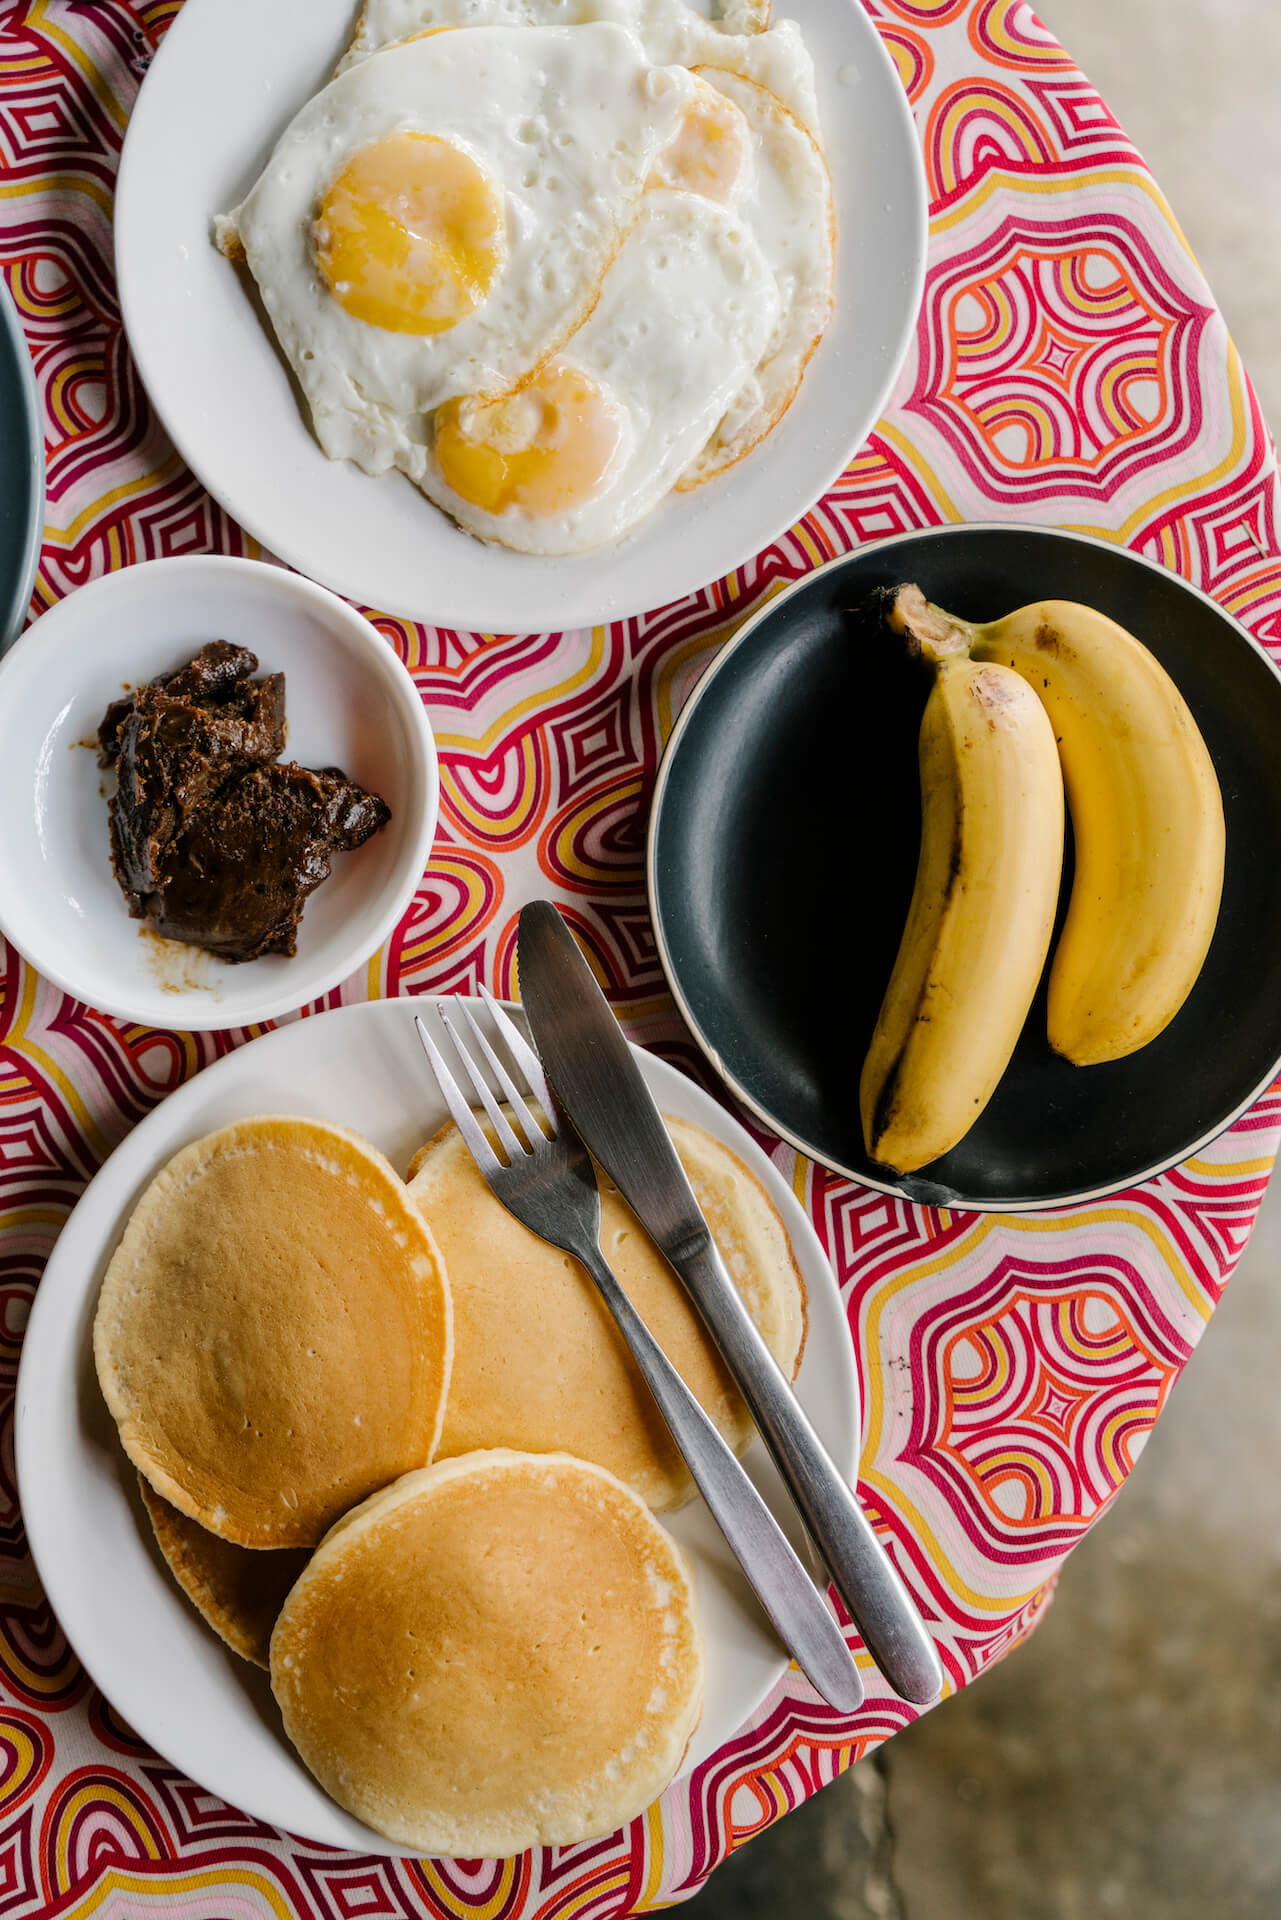 A breakfast spread of pancakes, eggs, and bananas